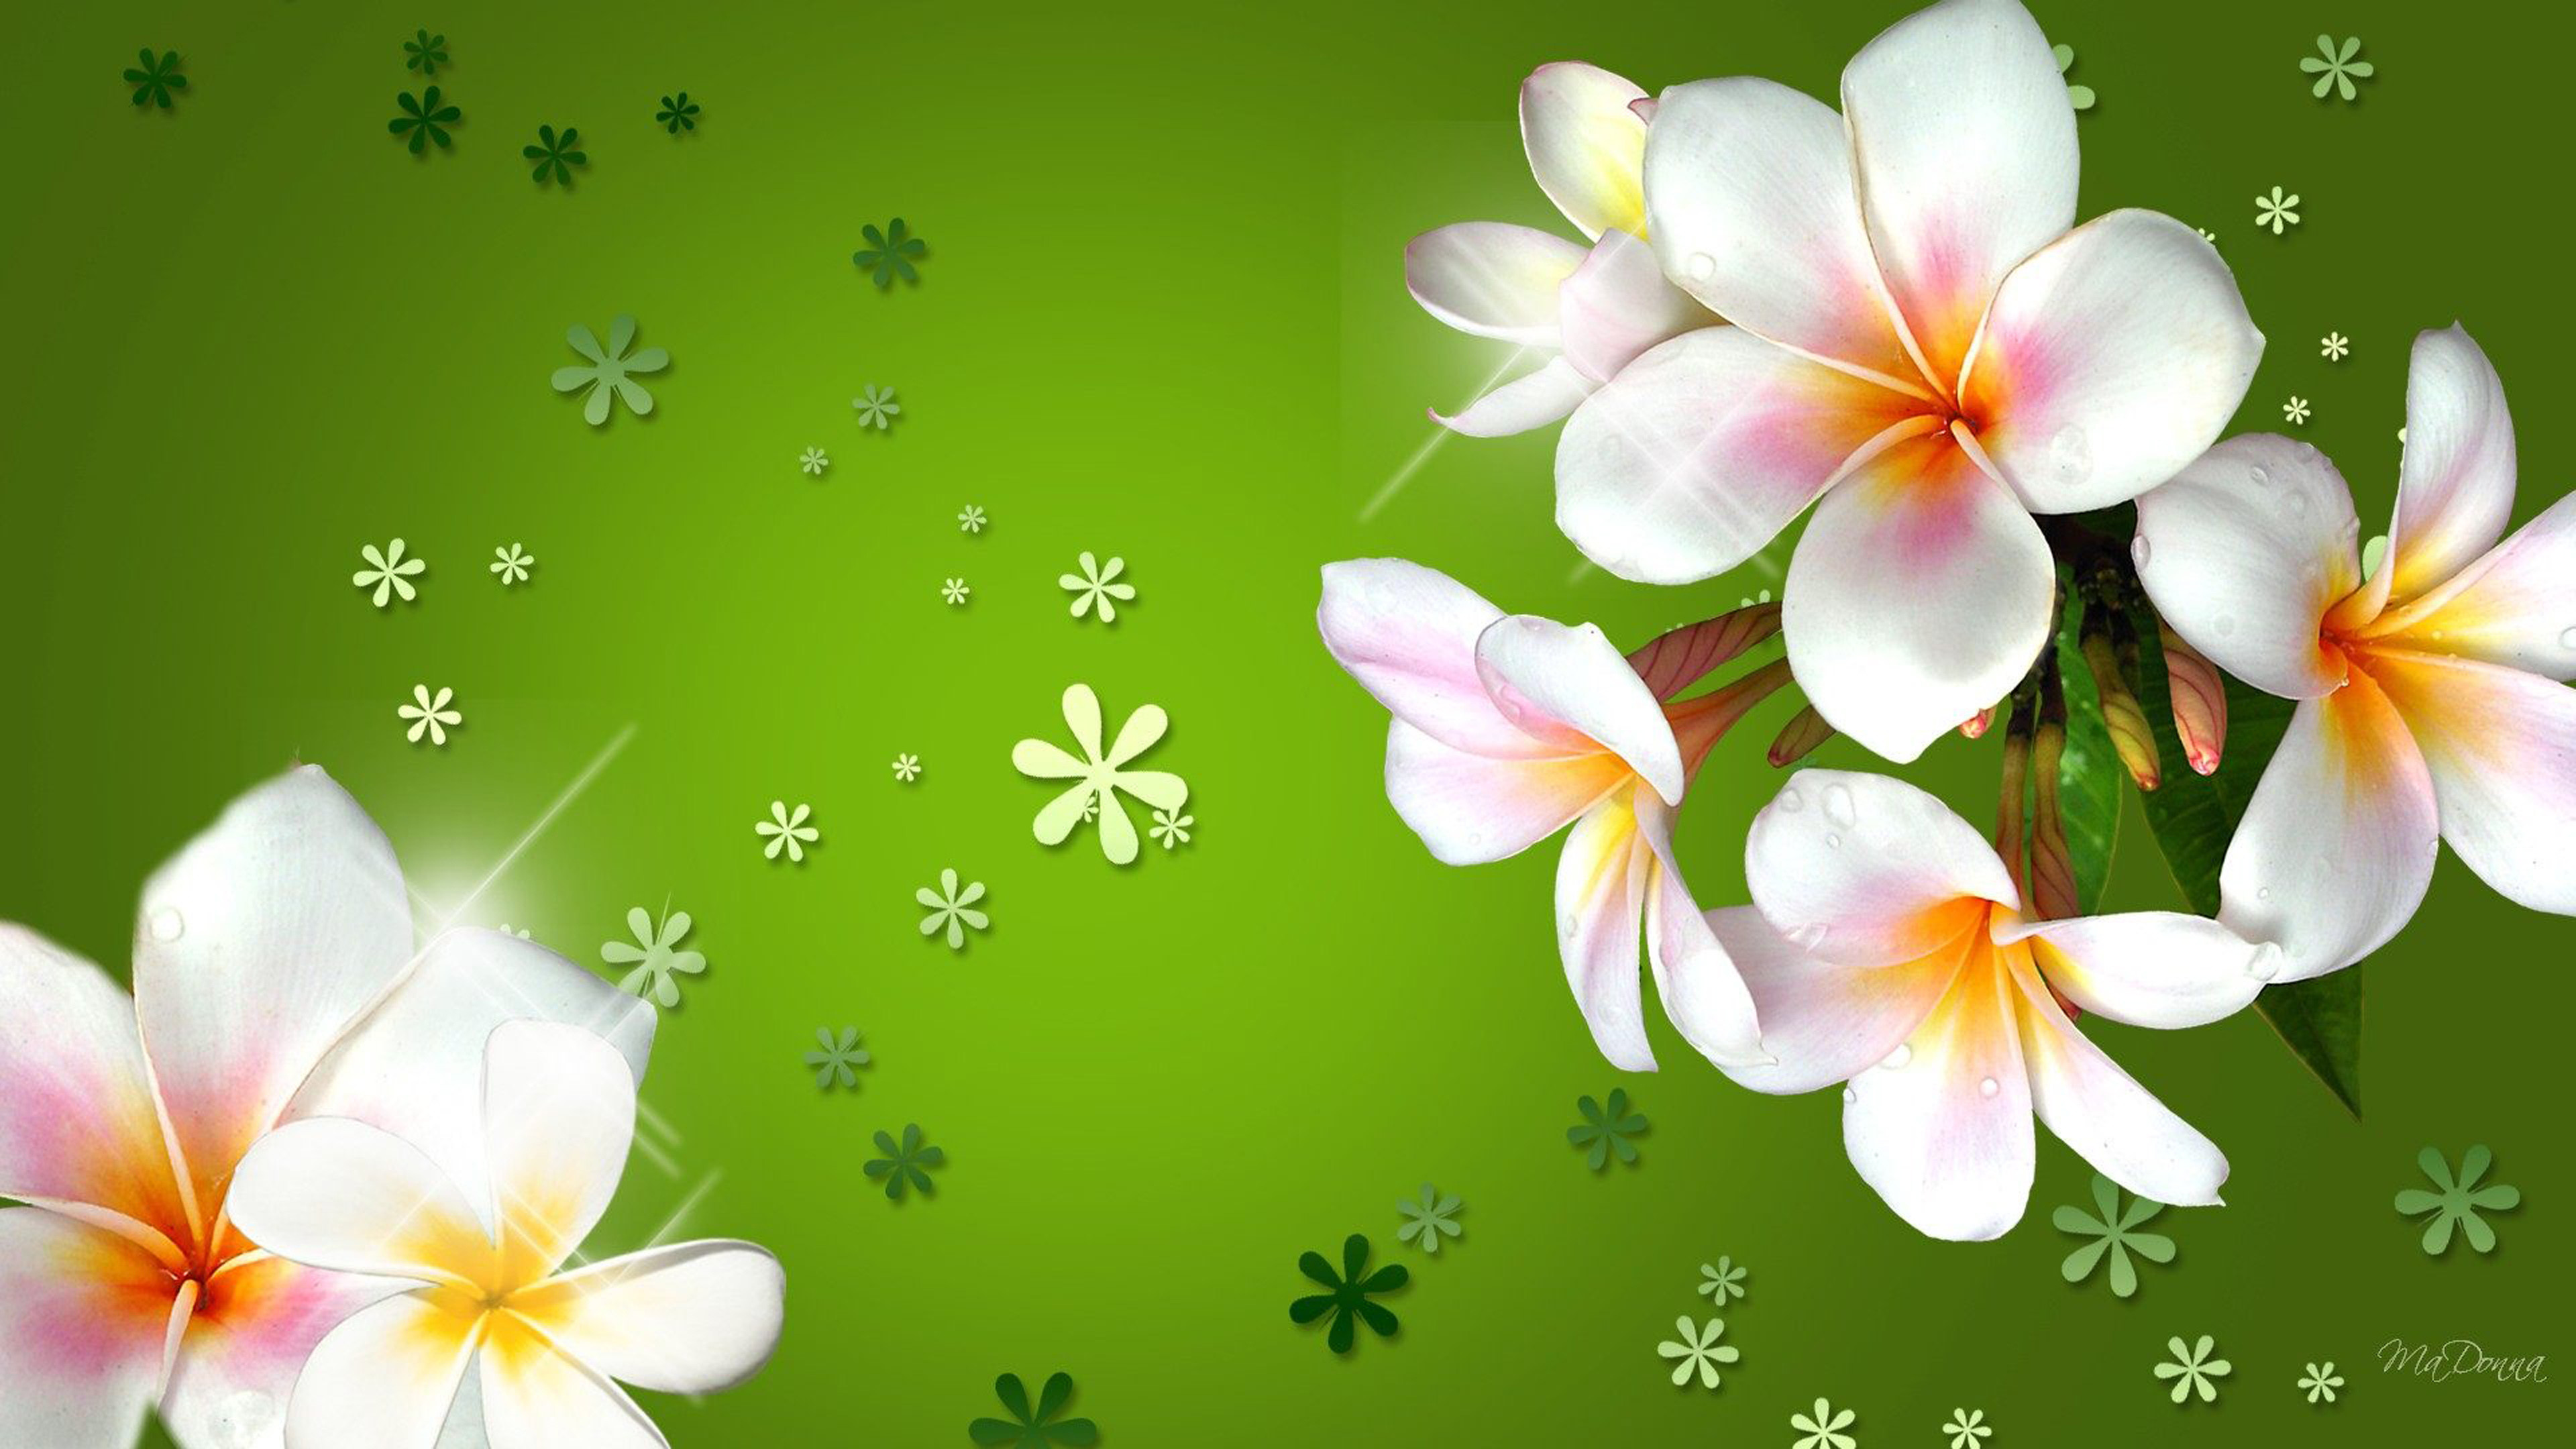 3840x2160 Plumeria Three Colored Flowers With Bright Green .